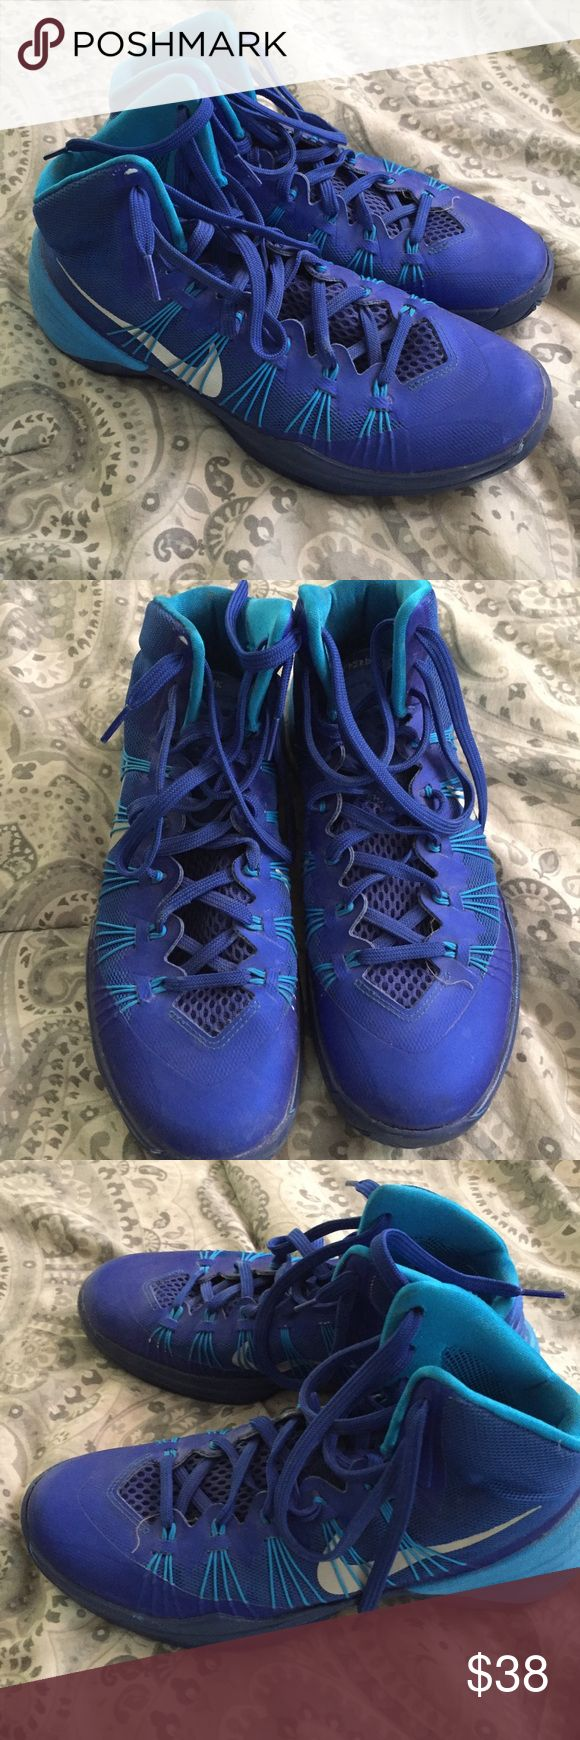 Hyper dunk bball shoes Hyper dunk high top basketball shoes. Men's 8...women's 9. Great condition! Nike Shoes Athletic Shoes